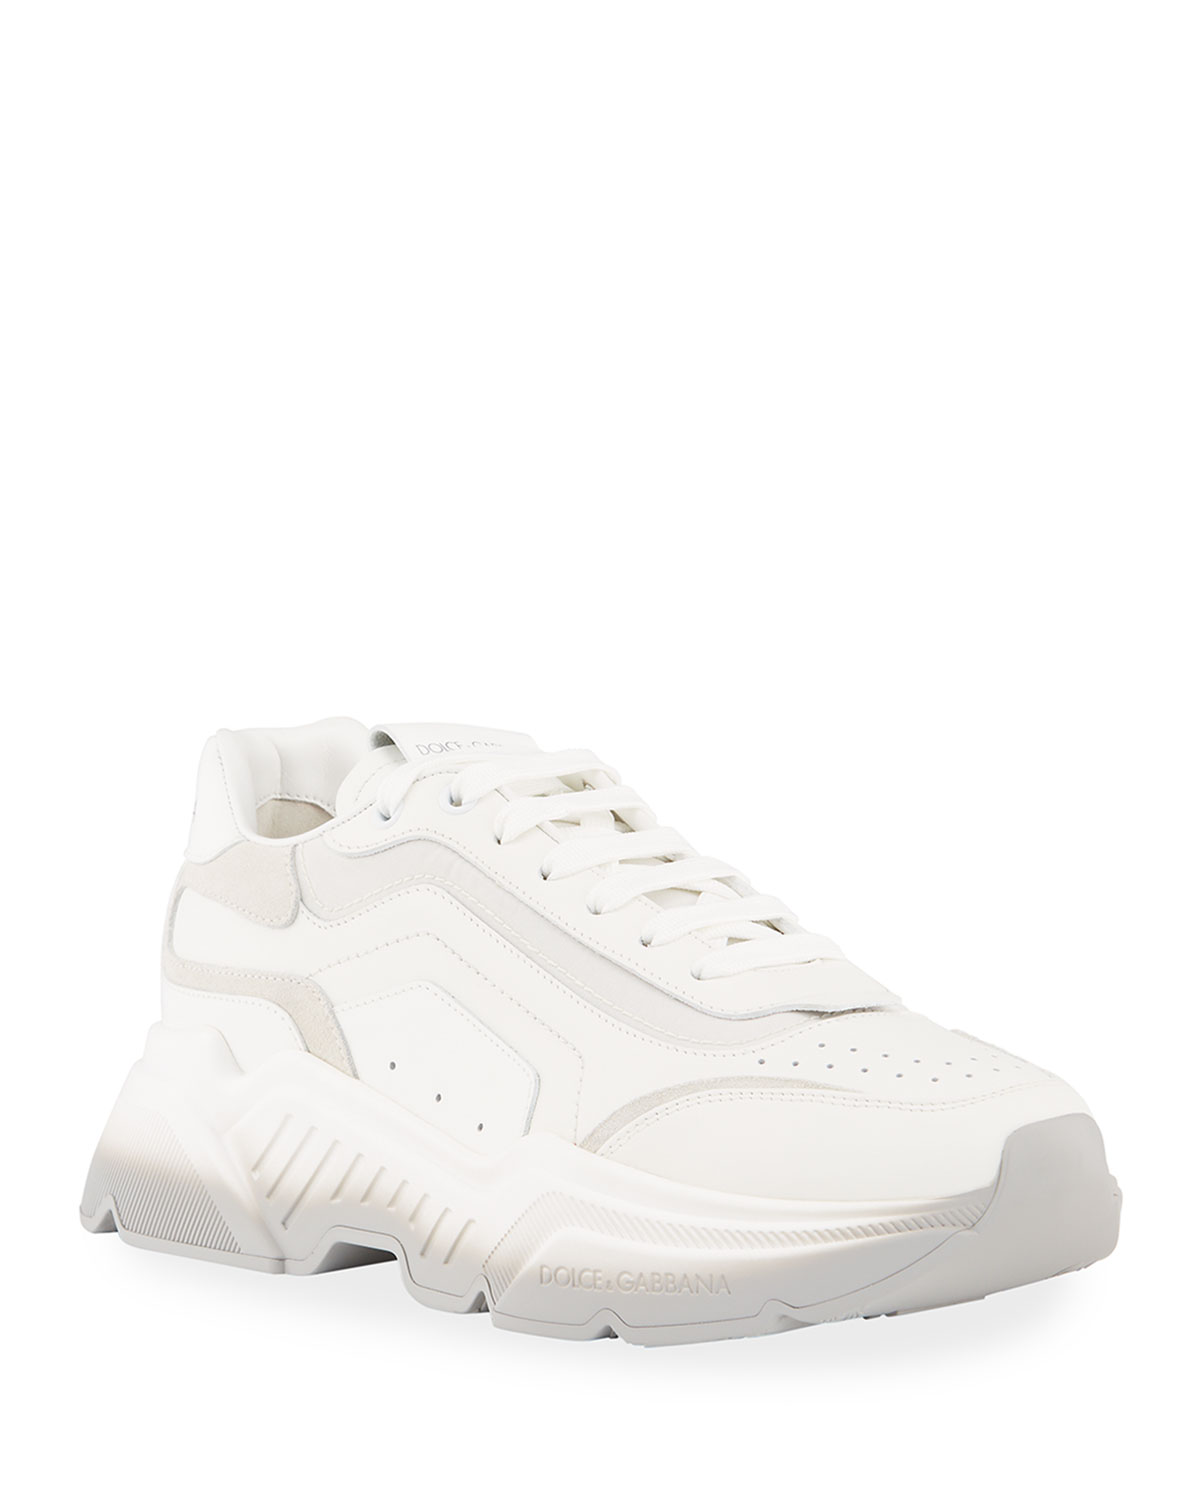 Dolce & Gabbana Suedes MEN'S RUNWAY DAYMASTER BICOLOR CHUNKY SNEAKERS